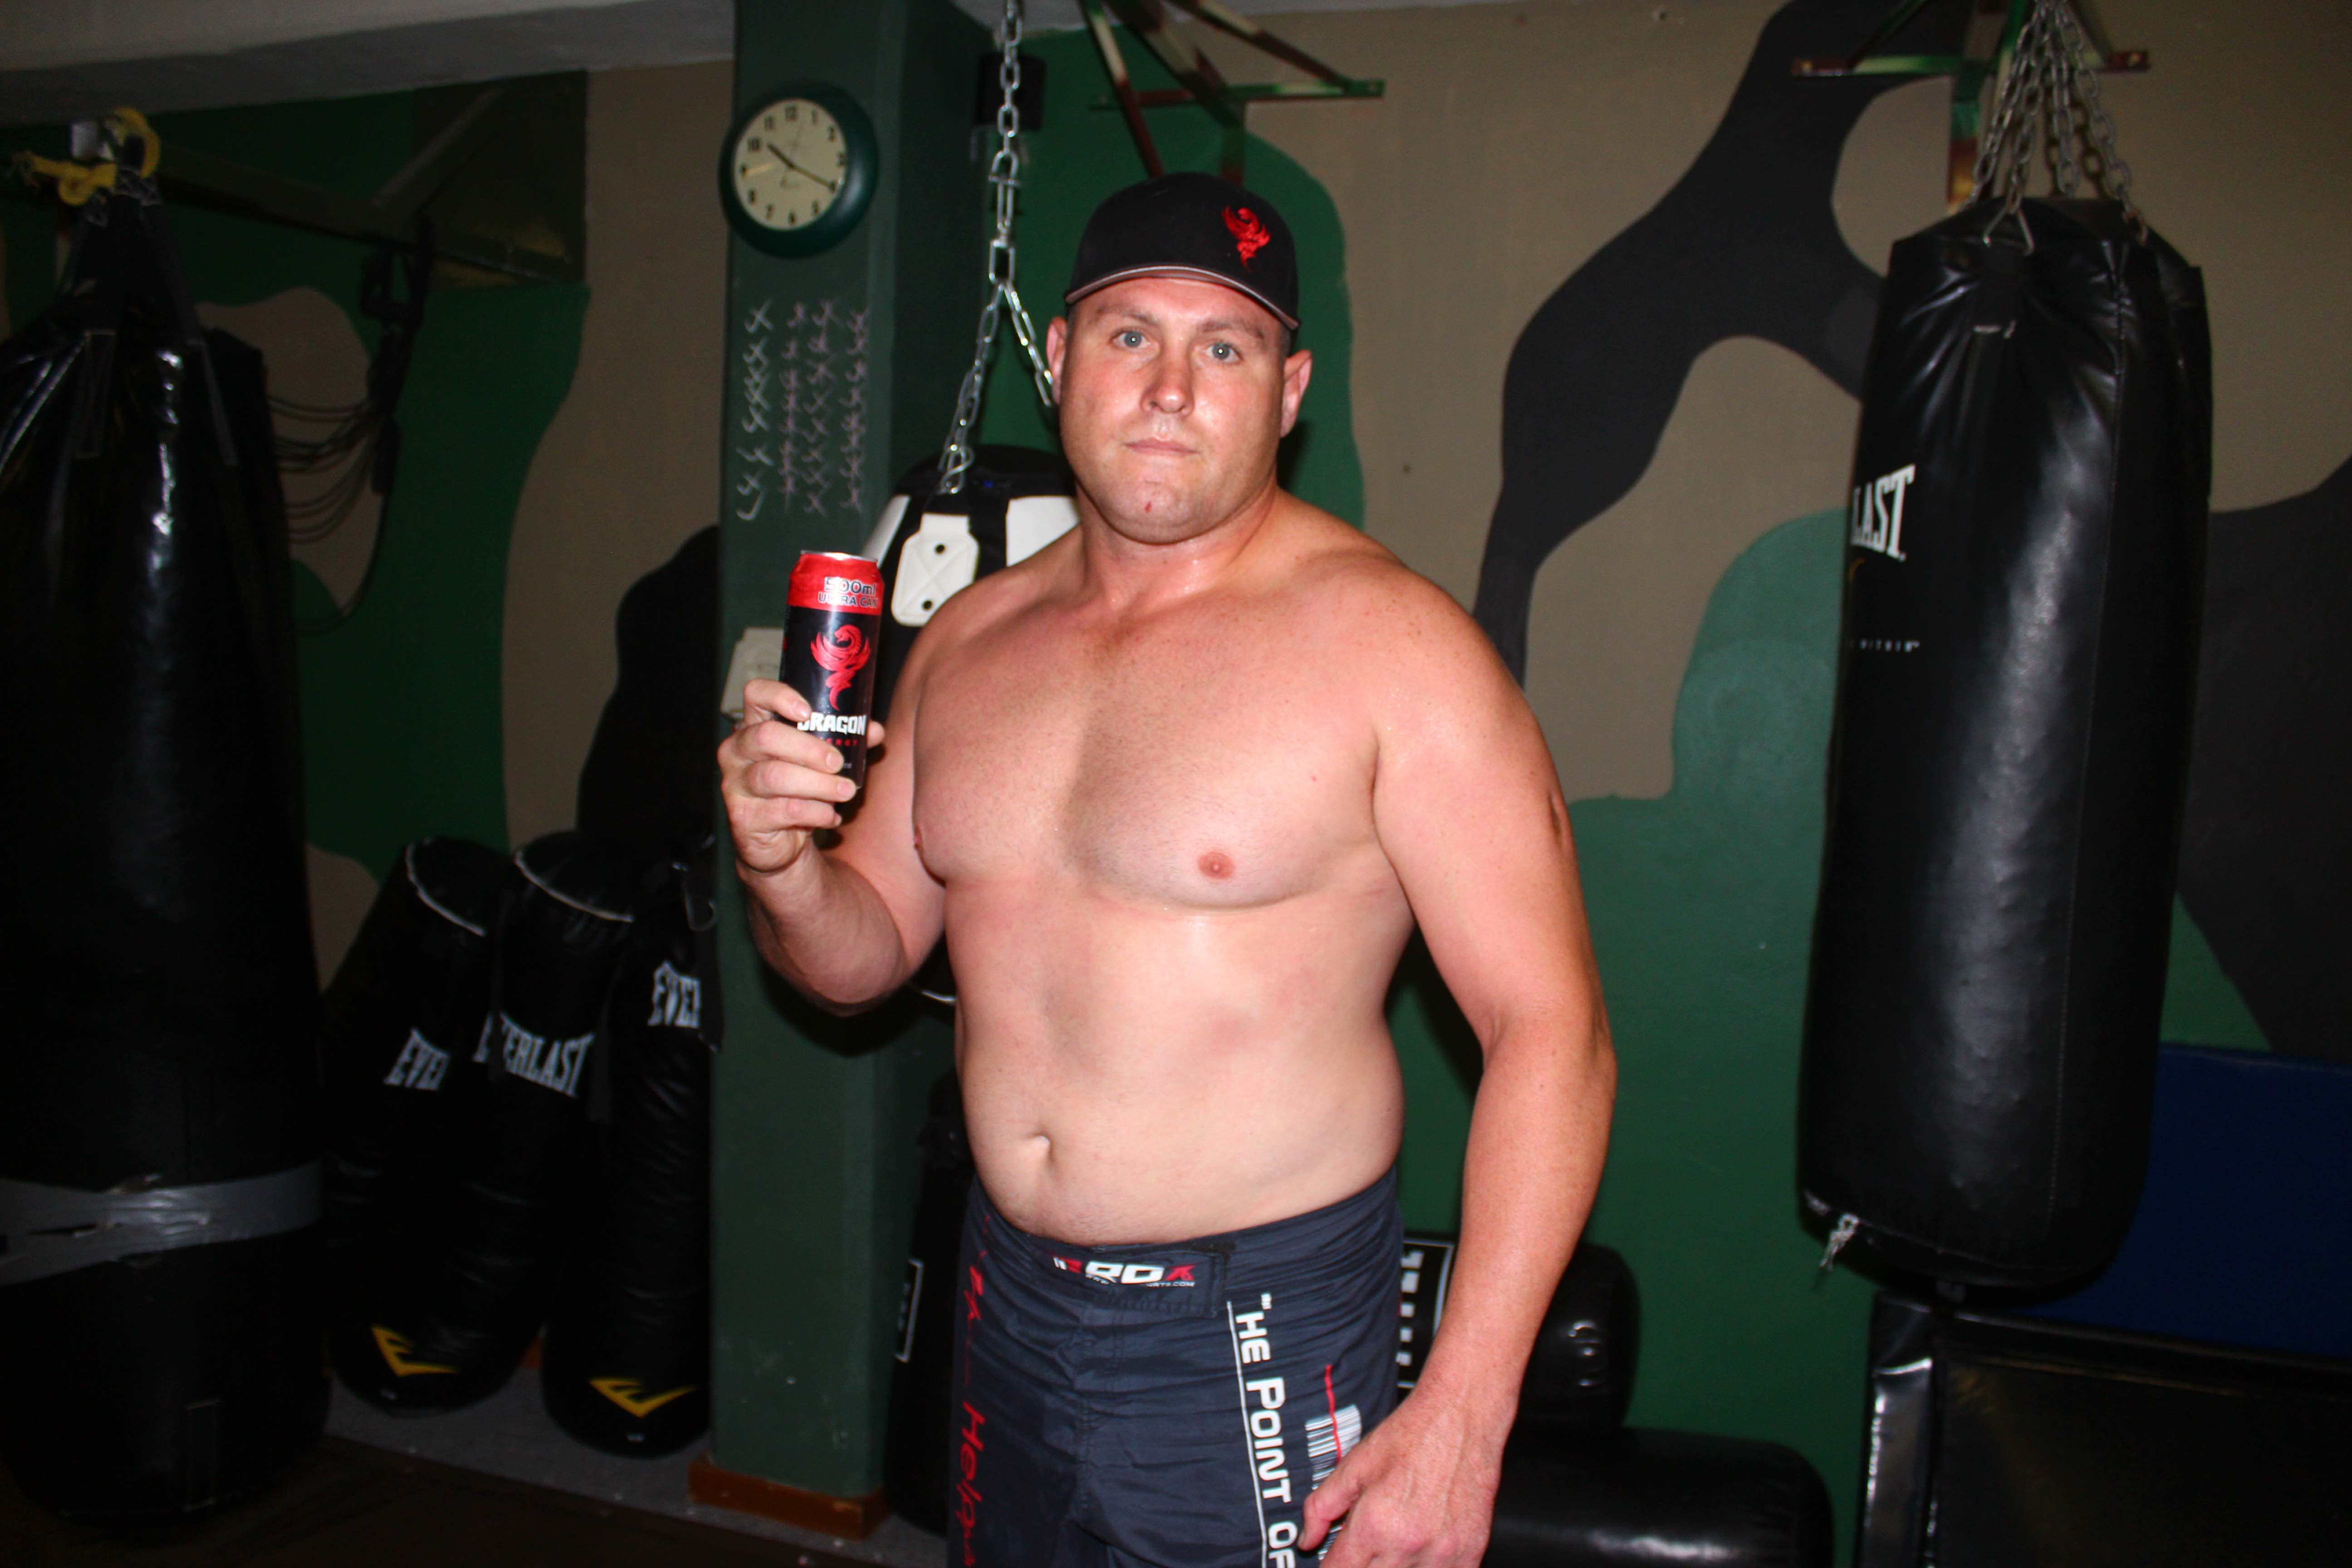 Mixed Martial Arts fighter Michael Vermeulen sponsored by Dragon Energy Drink